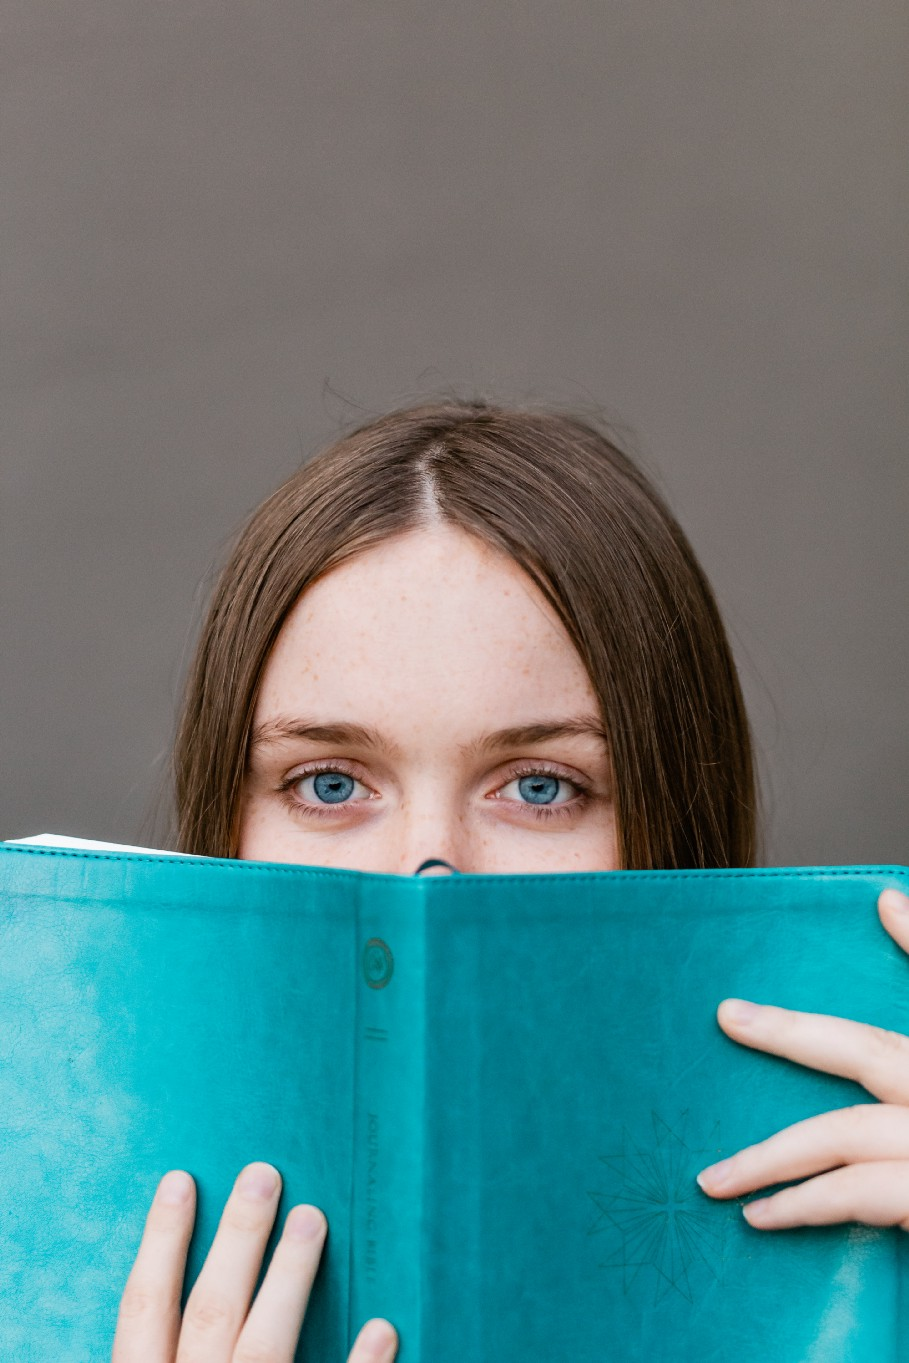 Woman holding an open book close to her face.